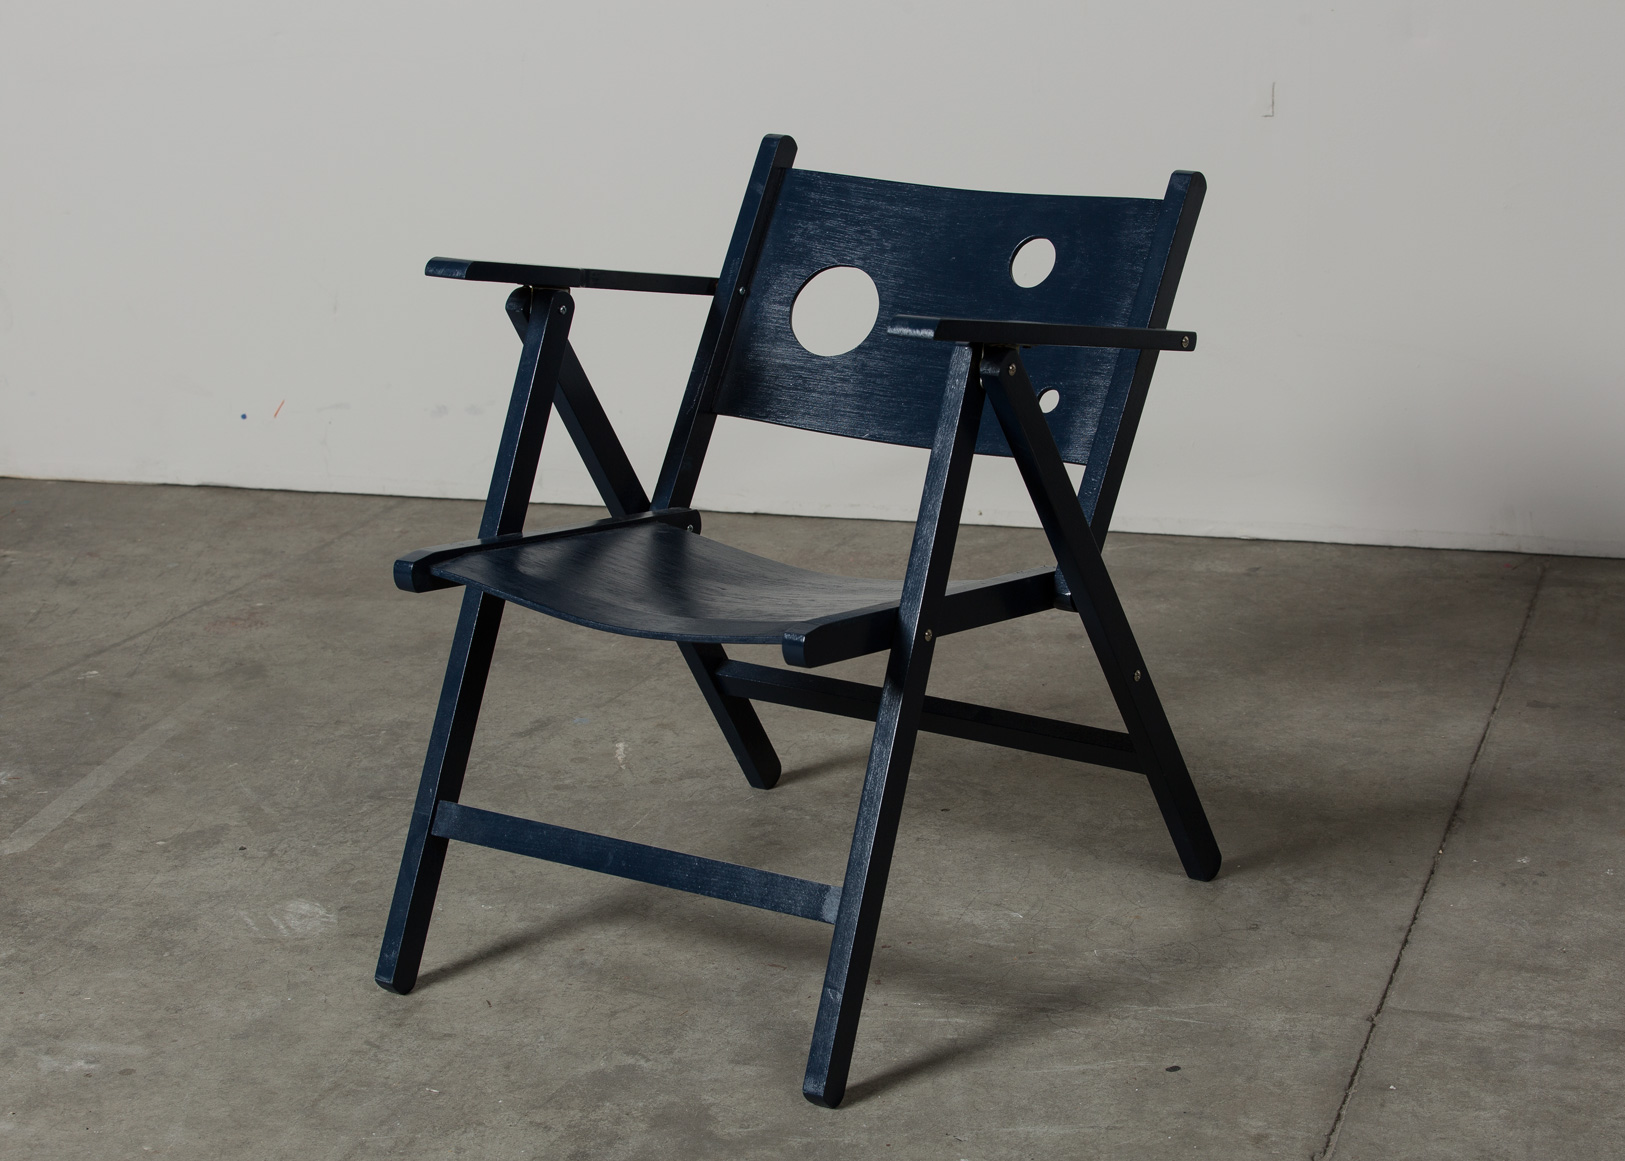 Midnight folding chair